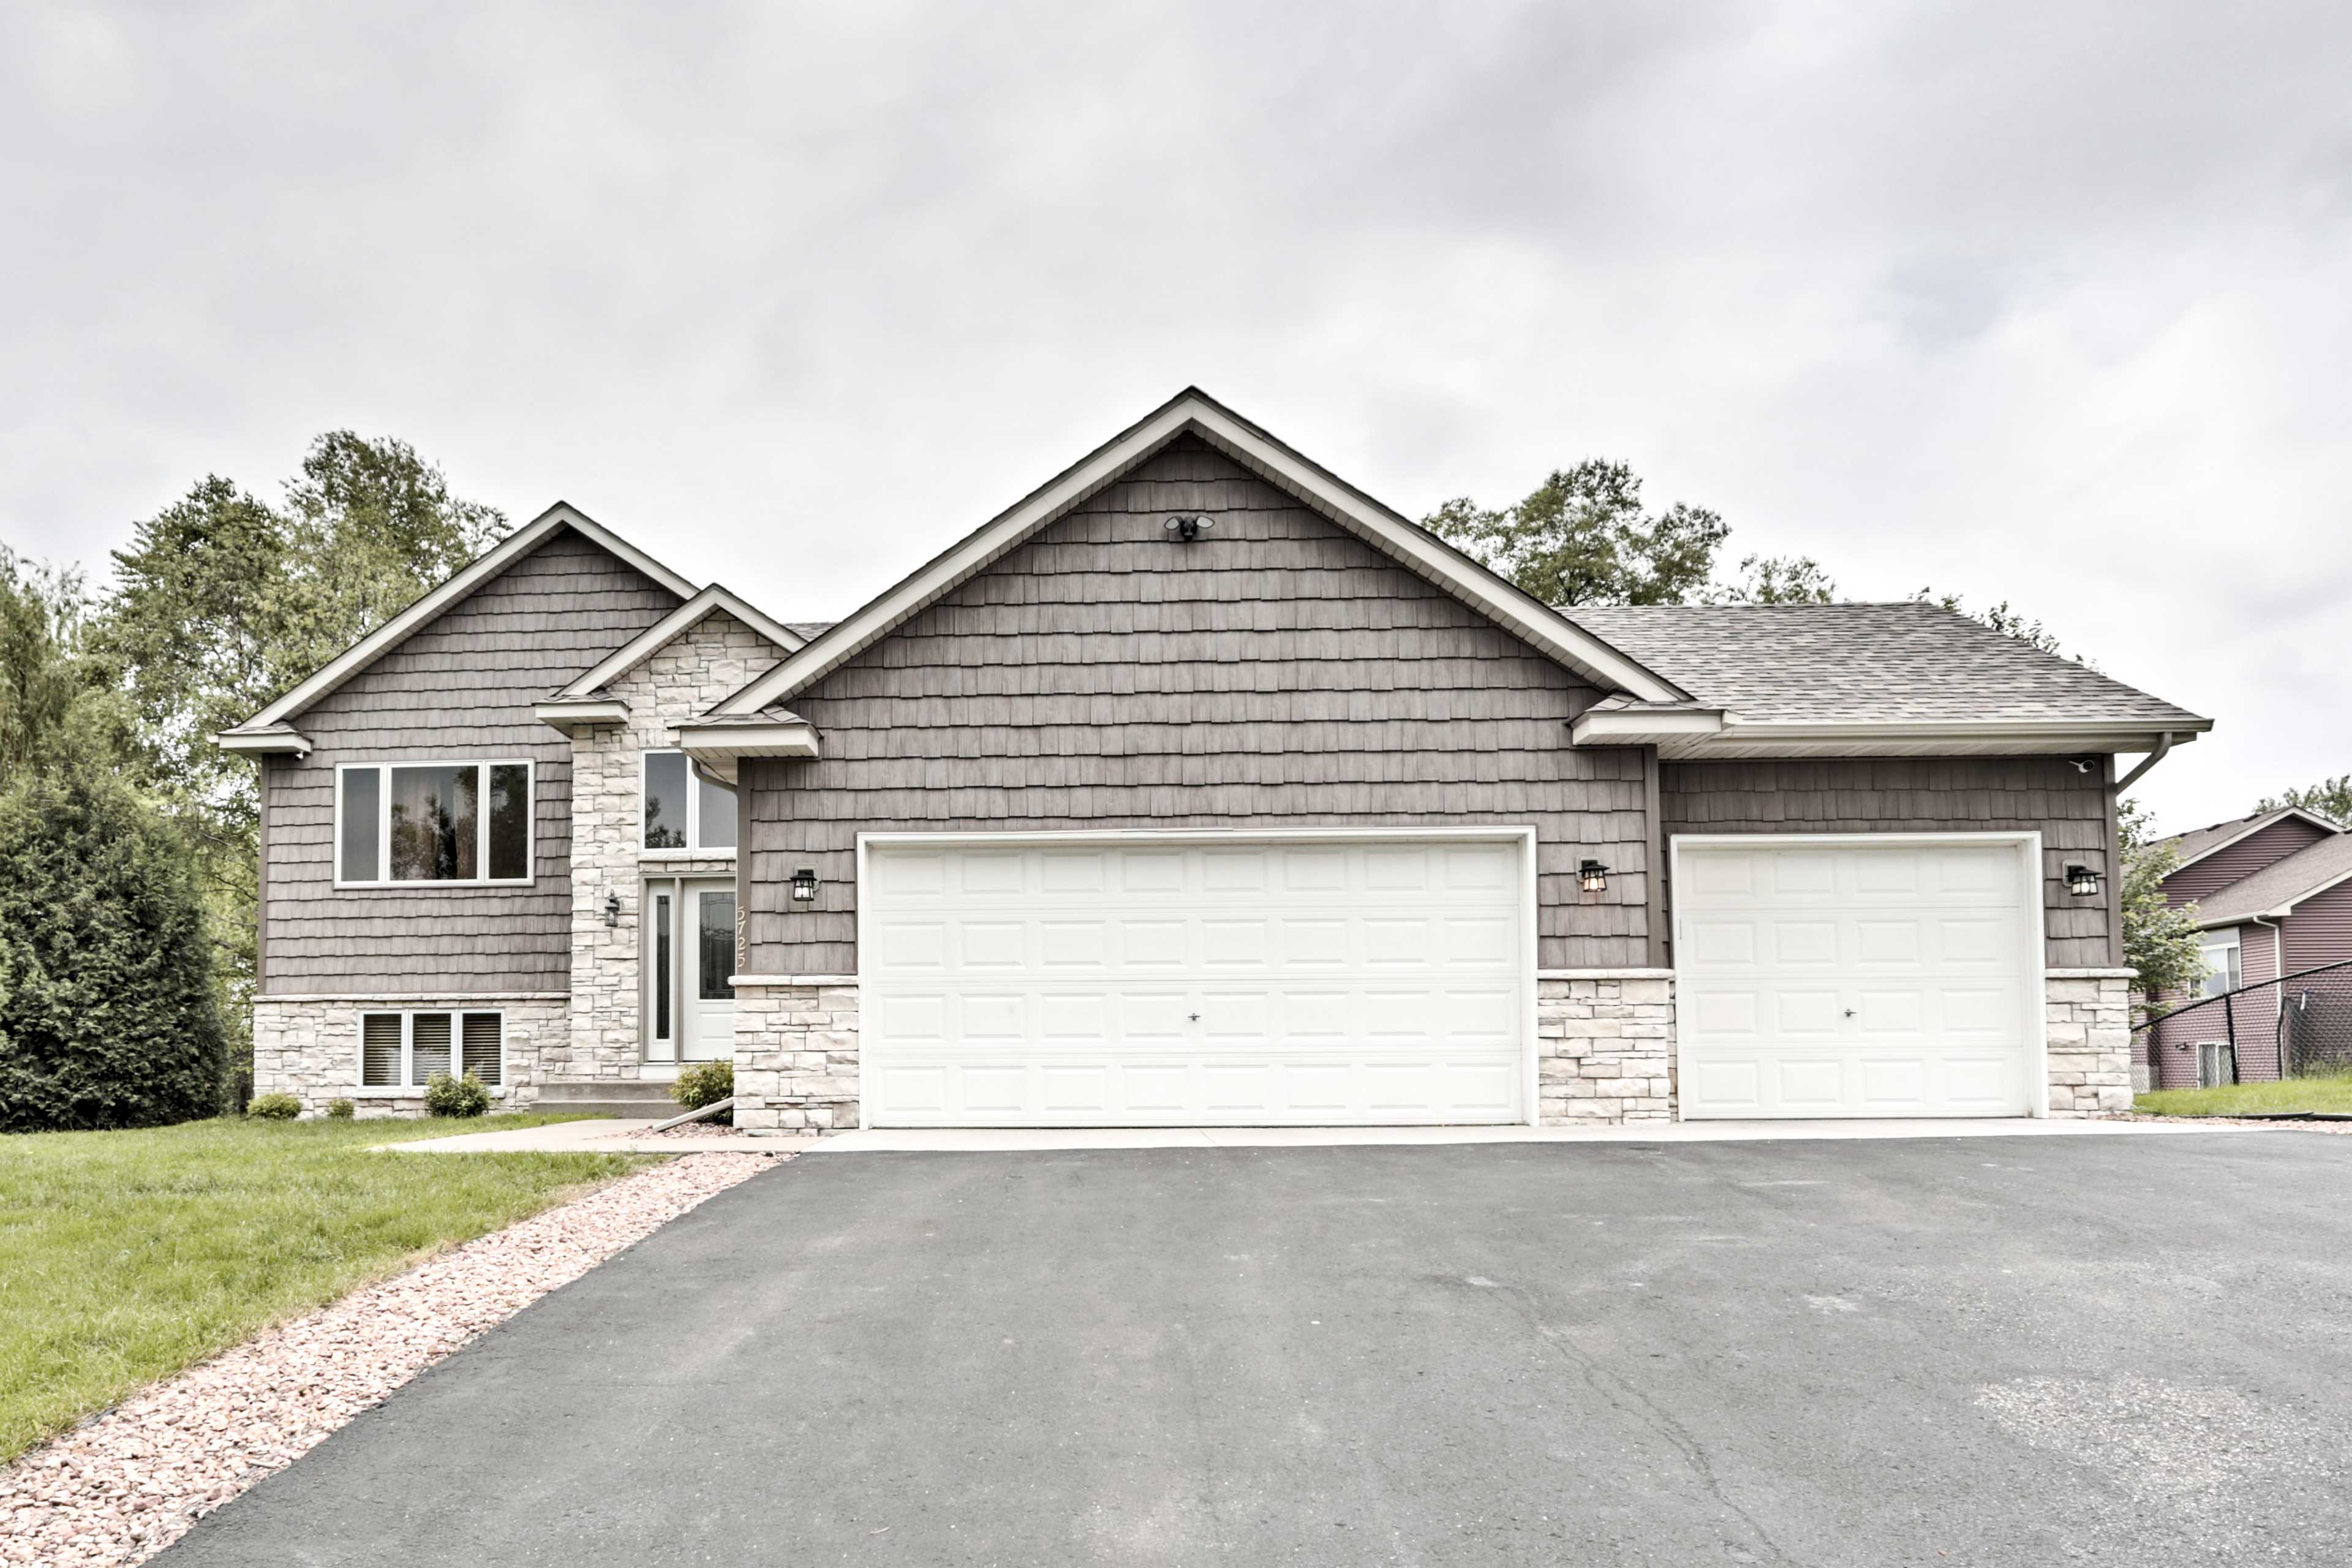 This 4-bed, 2-bath home boasts 2,800 square feet of living space.